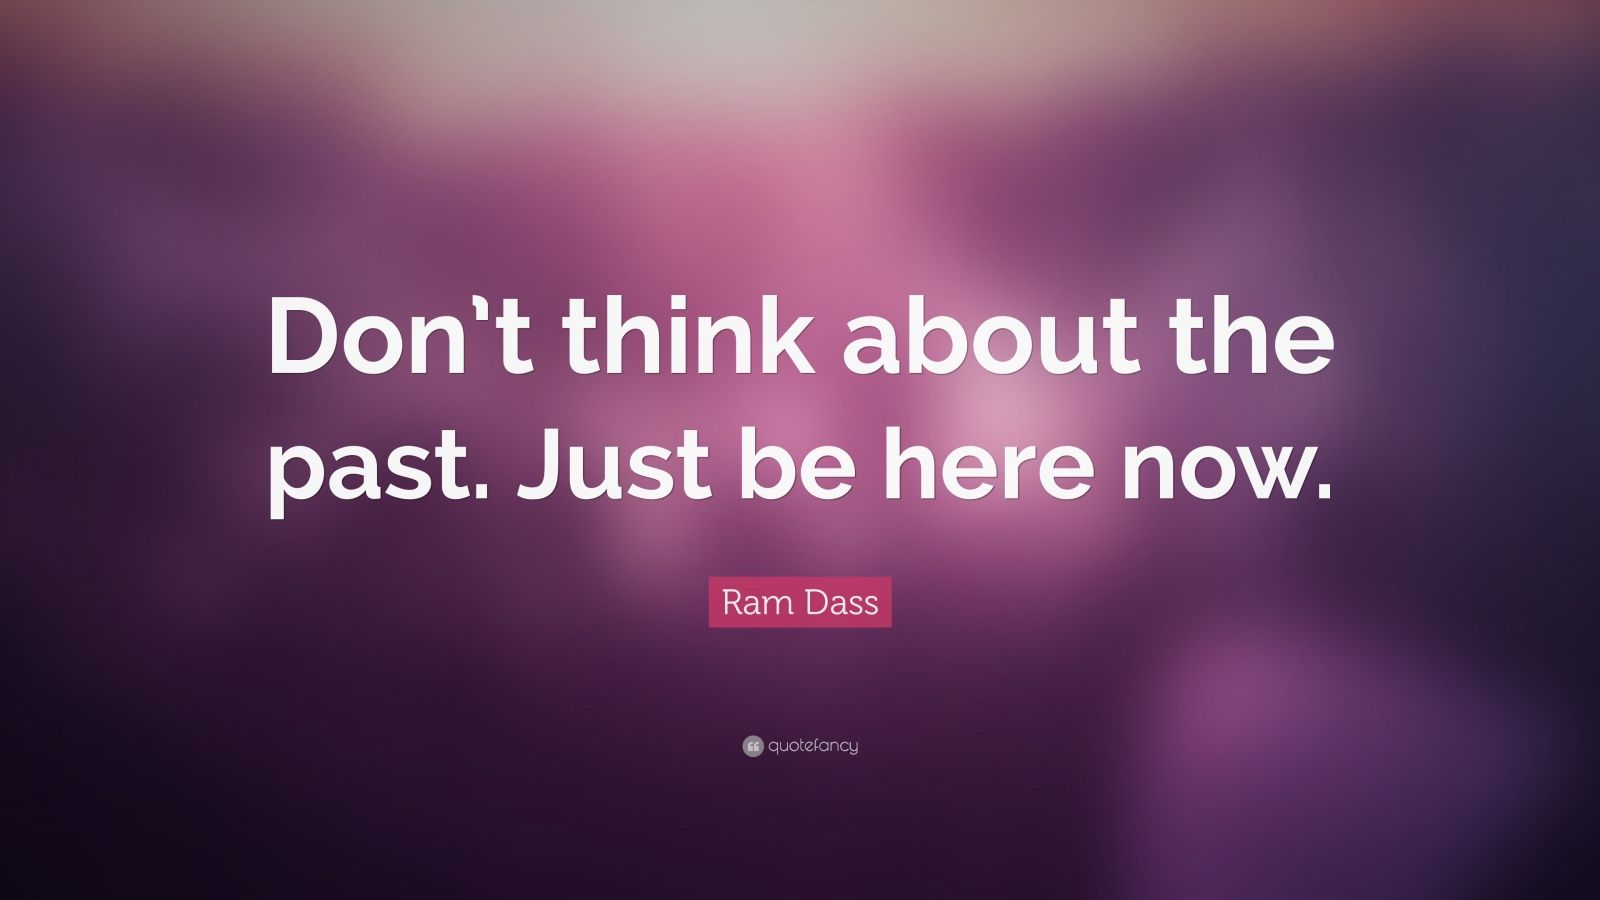 Wallpaper Of Yoga Quote Ram Dass Quote Don T Think About The Past Just Be Here